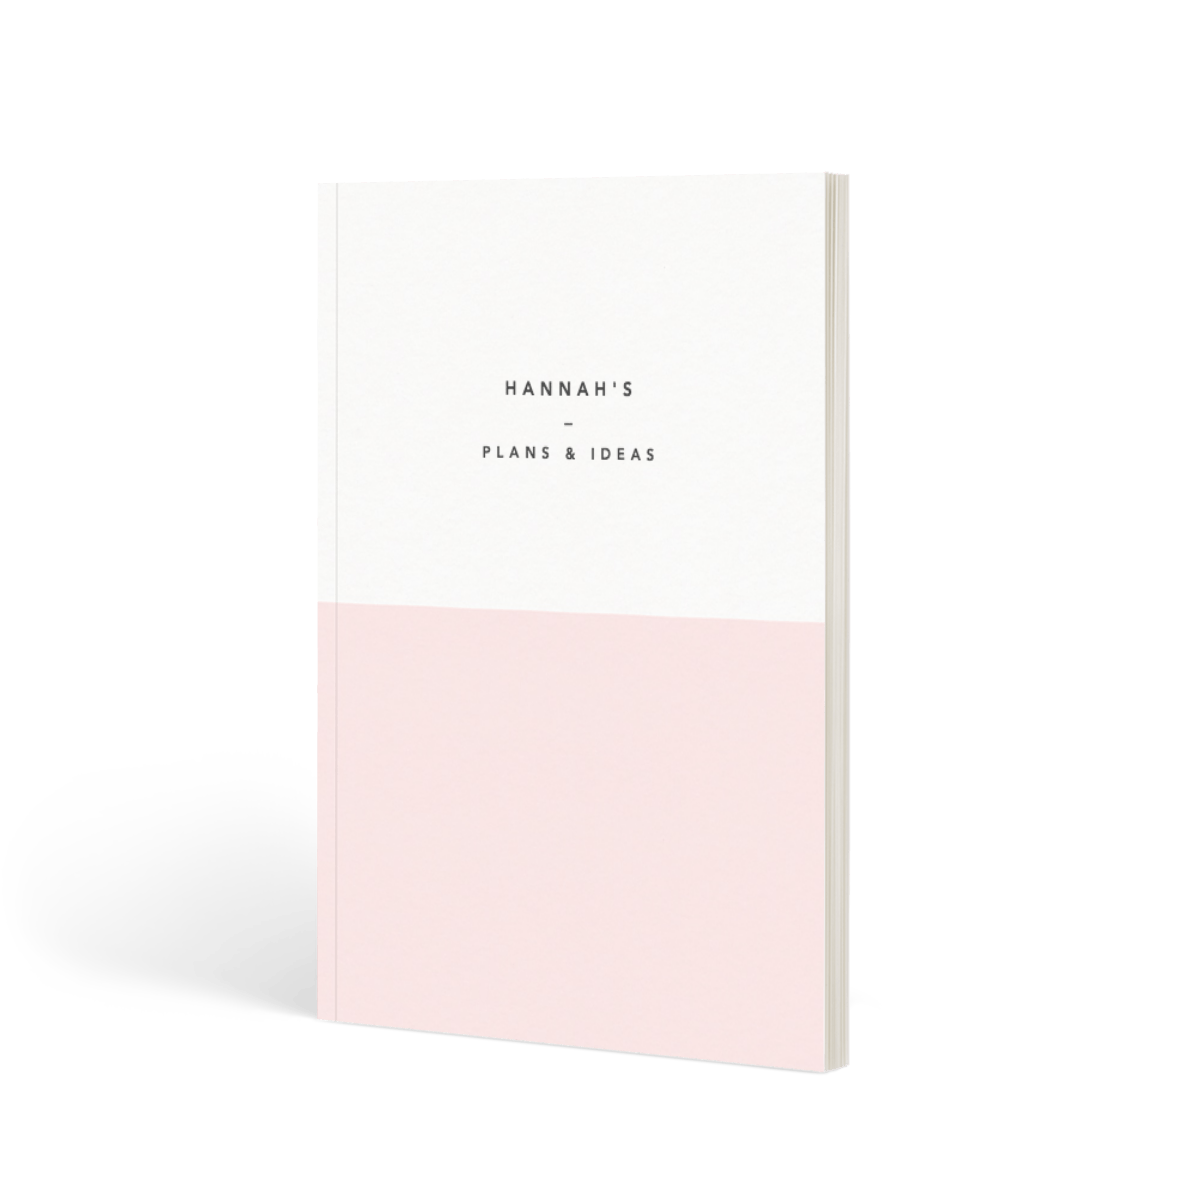 Https%3a%2f%2fwww.papier.com%2fproduct image%2f36343%2f3%2fdemi pink 9127 front 1534804932.png?ixlib=rb 1.1